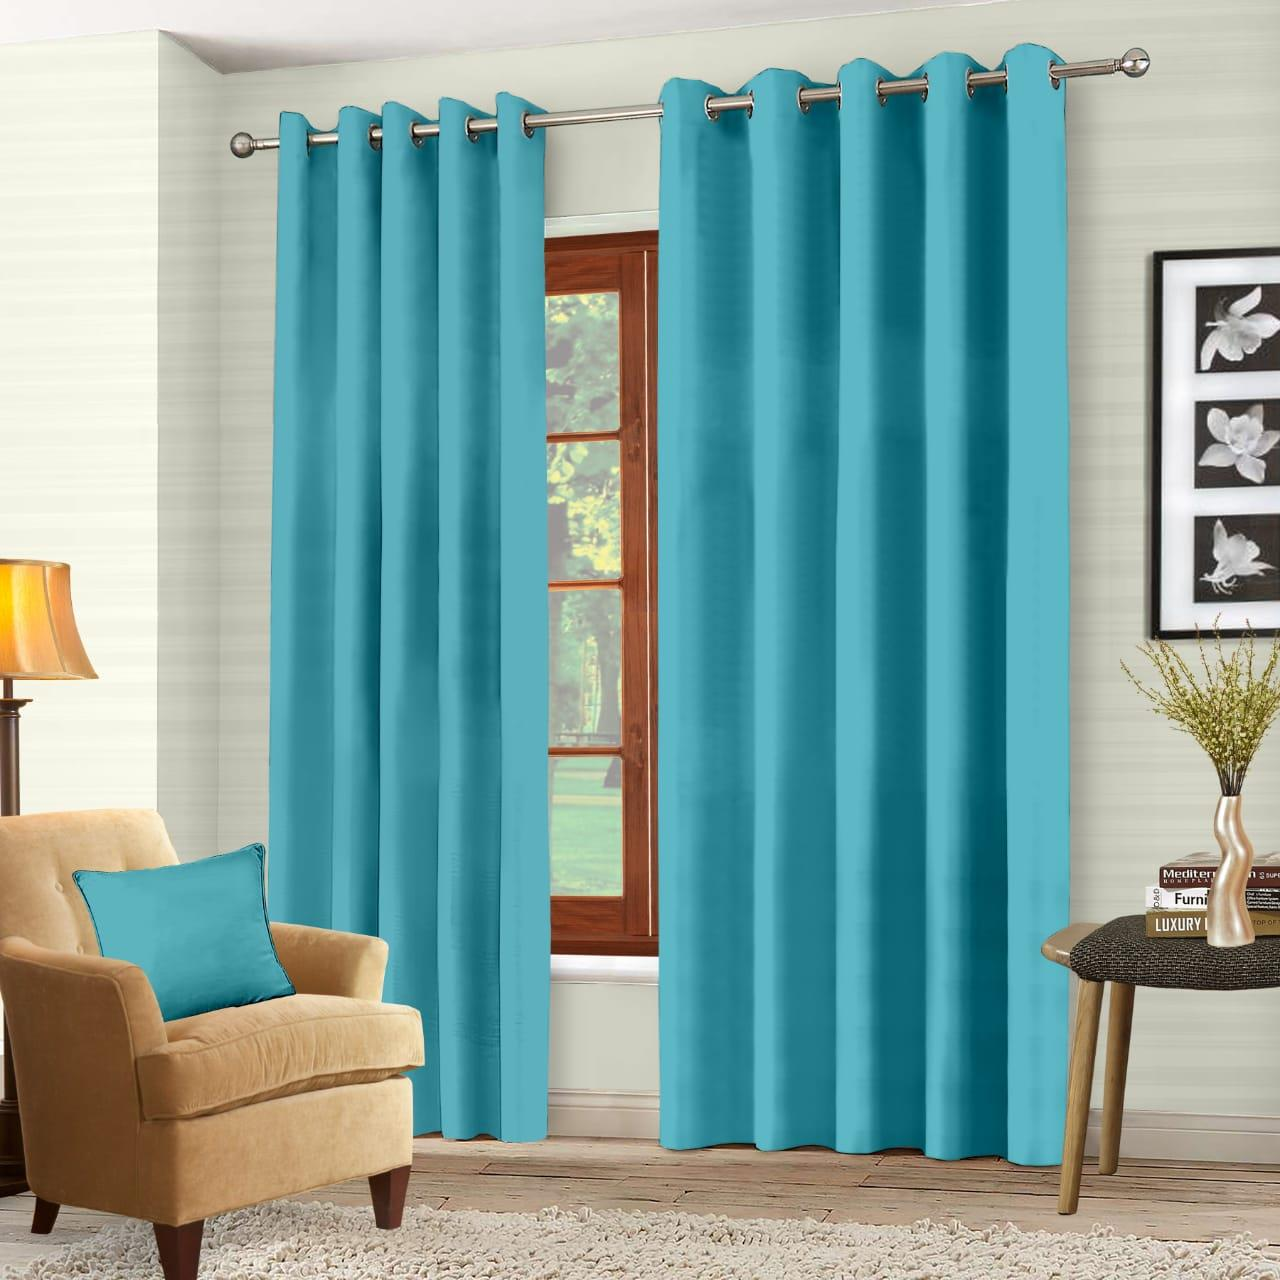 Luxury-Thermal-Blackout-Eyelet-Ring-Top-Curtains-Pair-with-tie-backs thumbnail 55